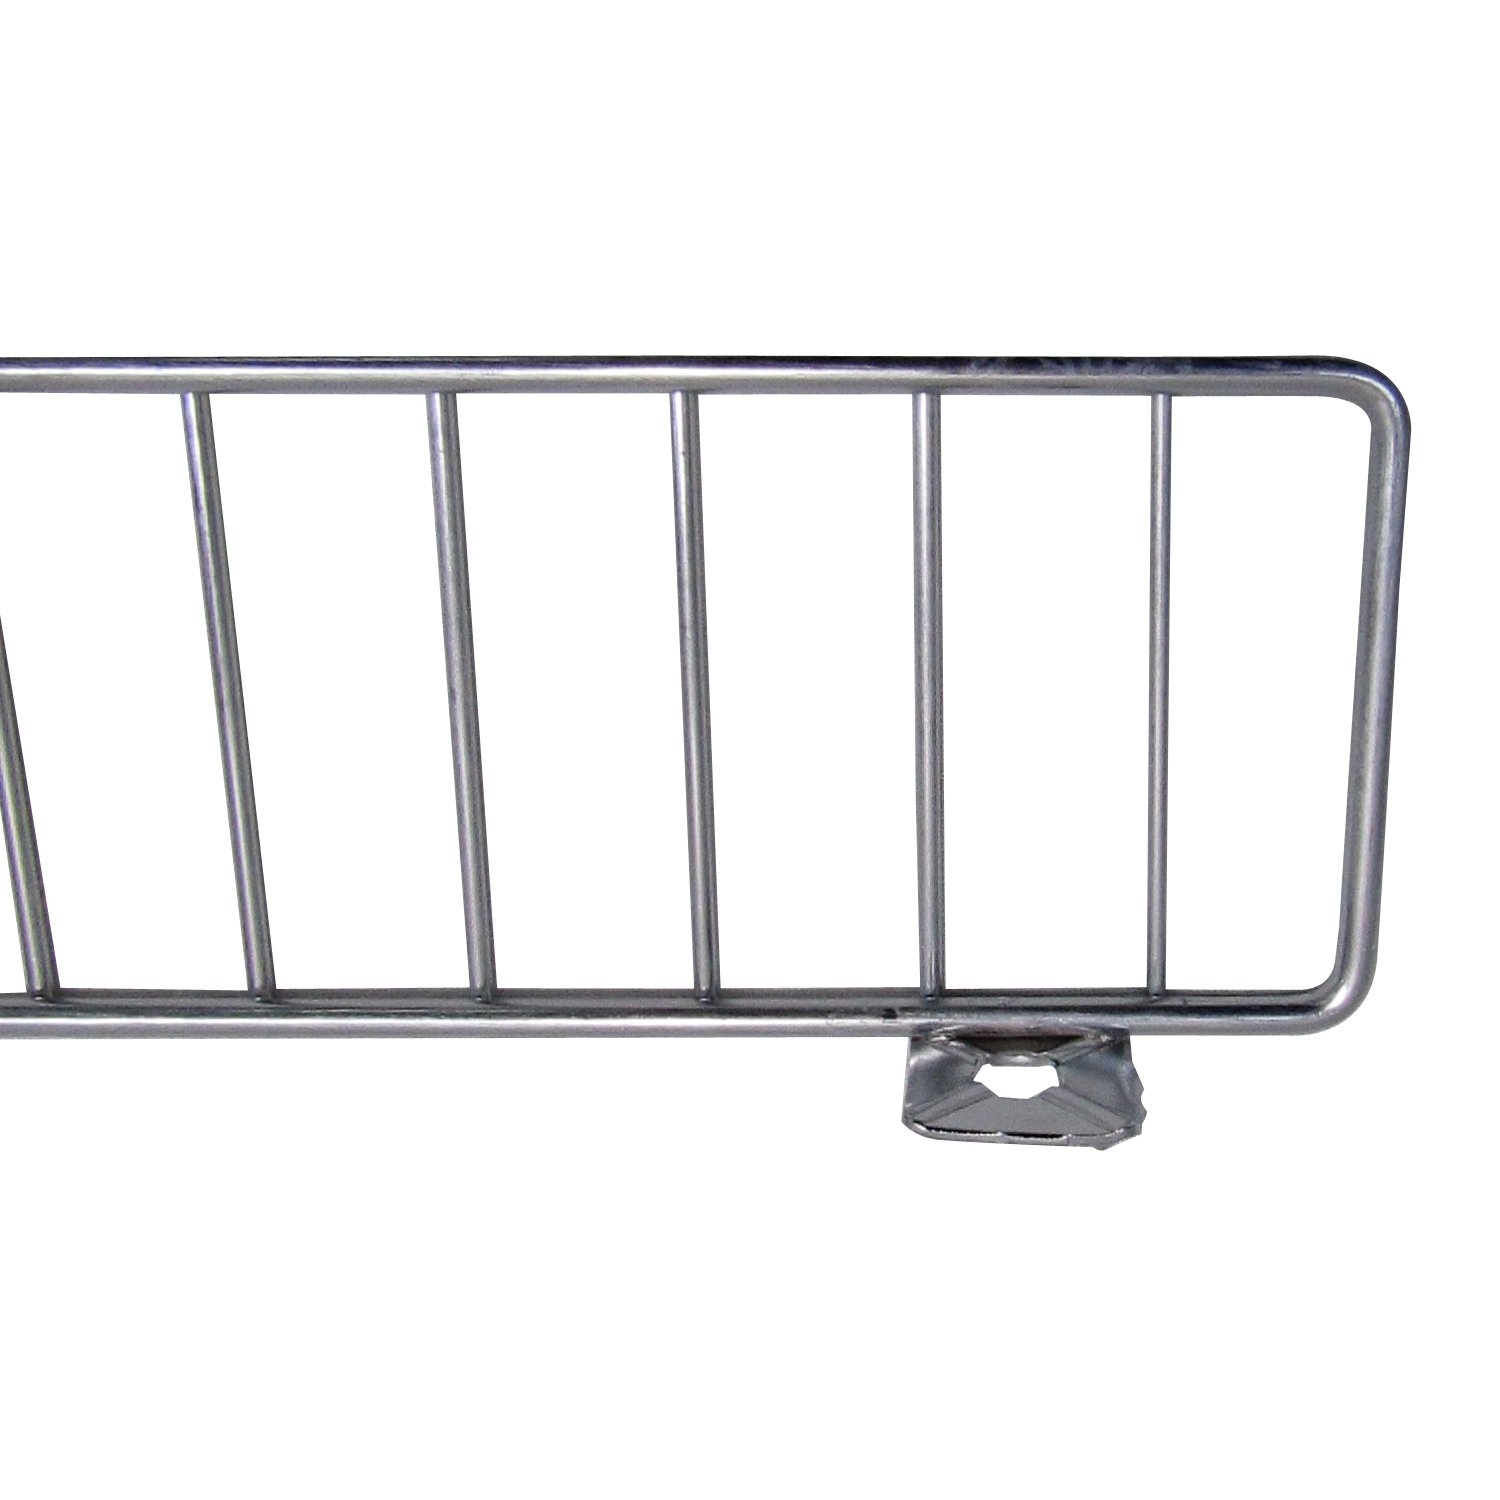 AWP CA-FD317CN-7 Chrome Divider, Lozier/Madix, 3 x 17 Size, Chrome, (Pack of 50) by AWP (Image #2)